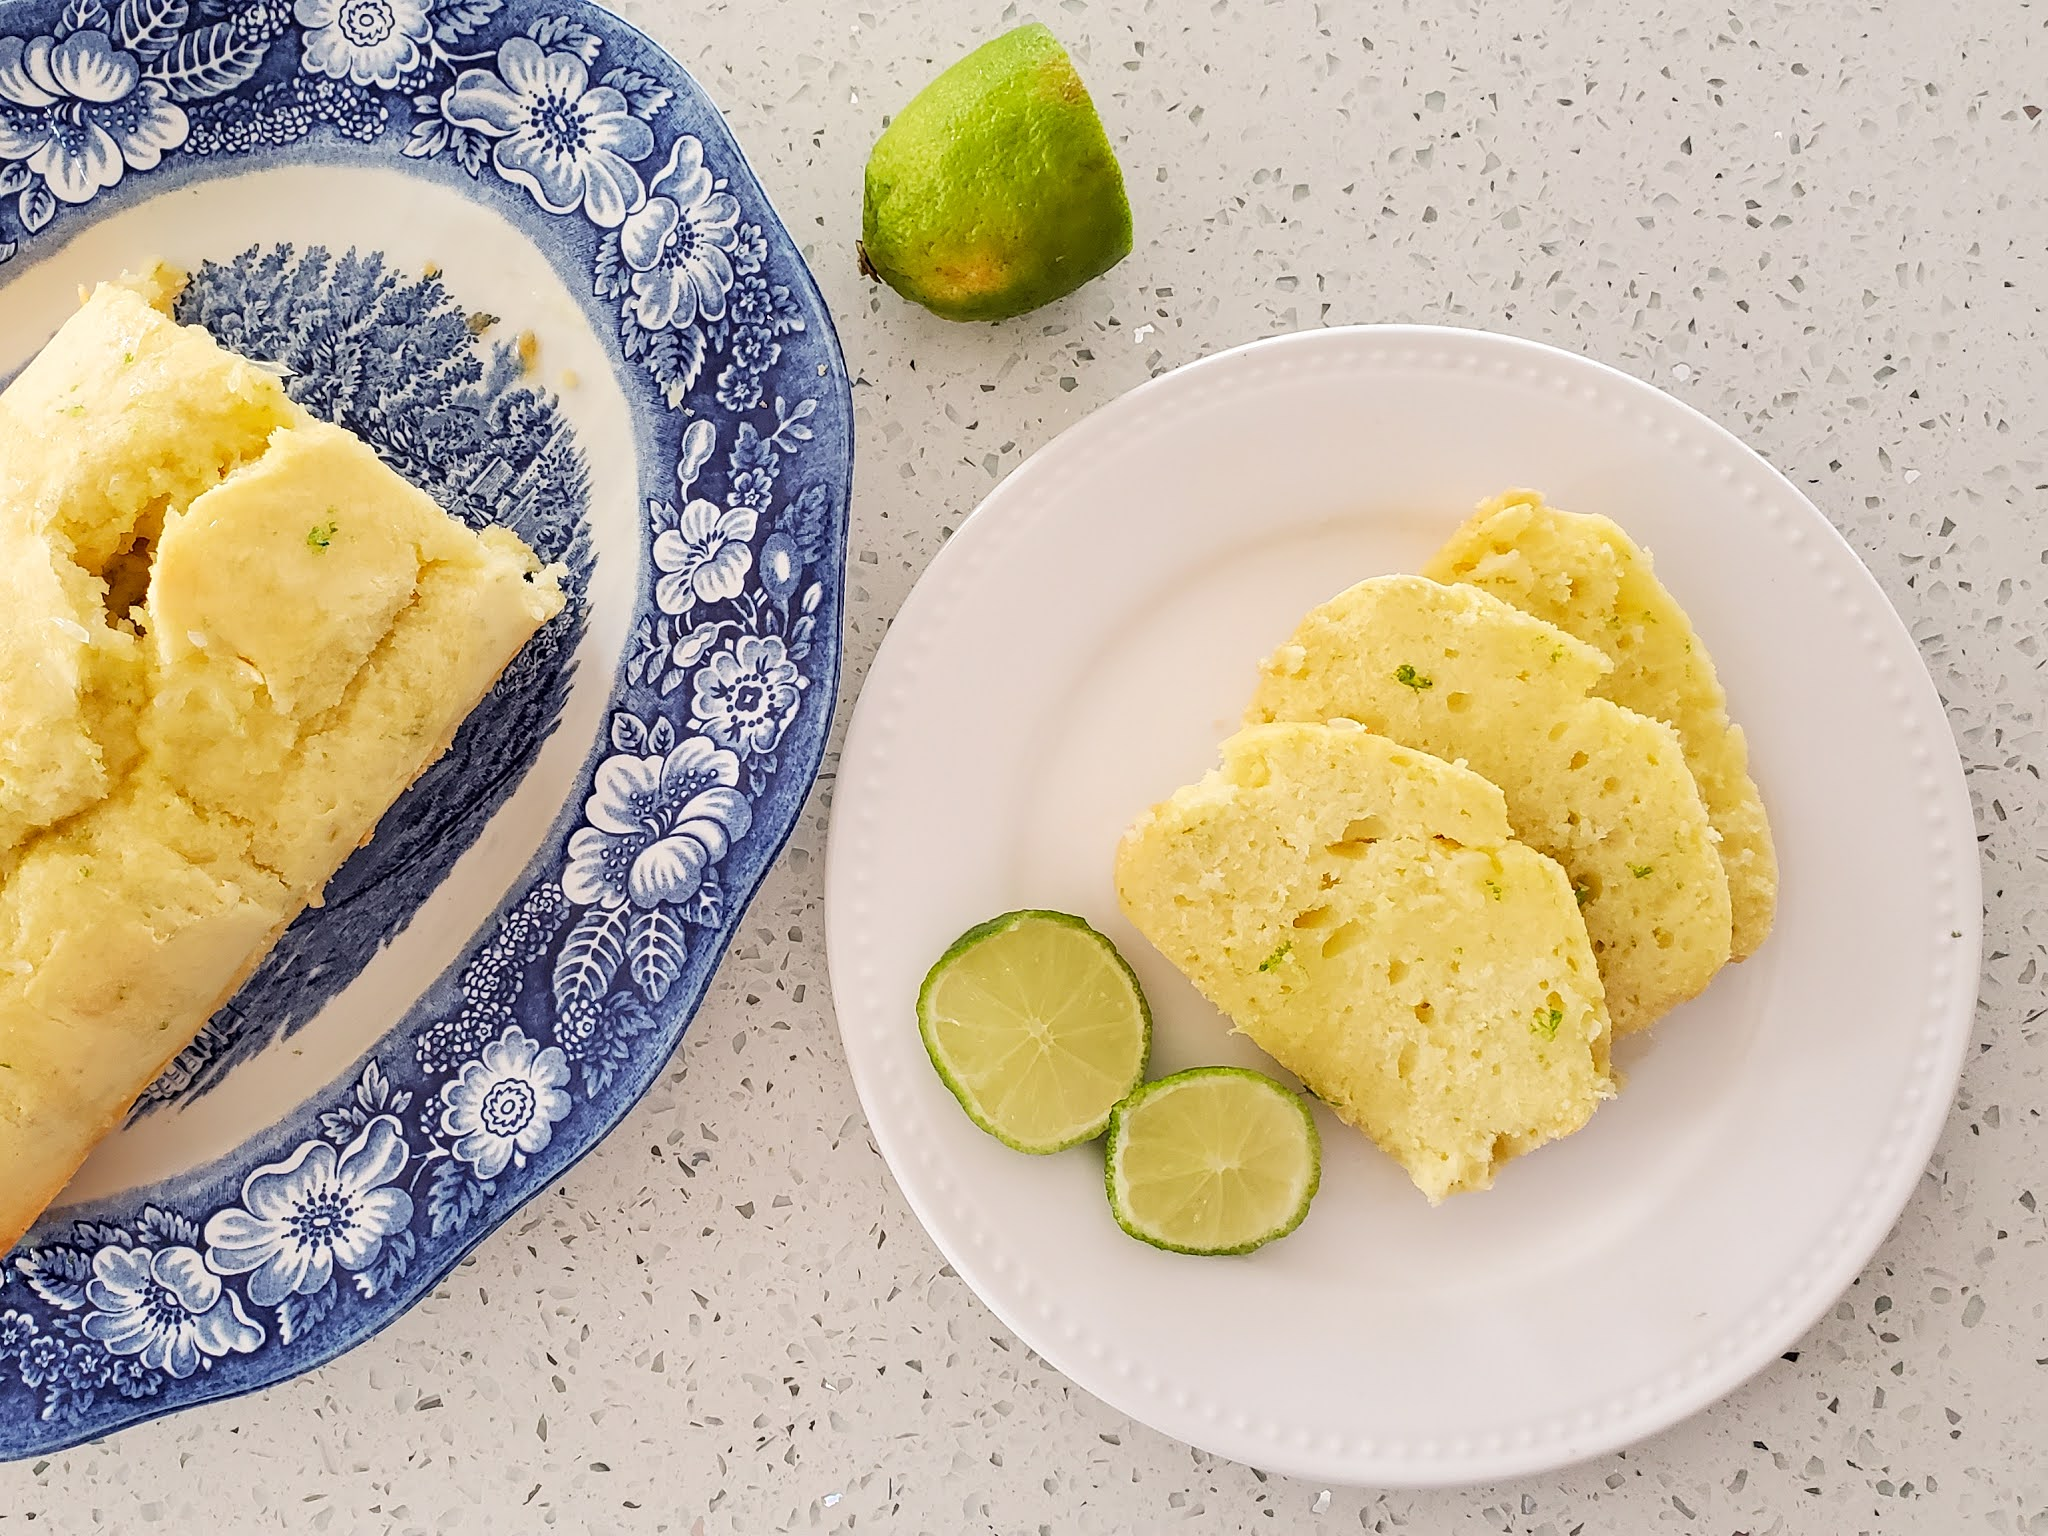 Easy and delicious lemon pound cake recipe by Plaid and Sugar